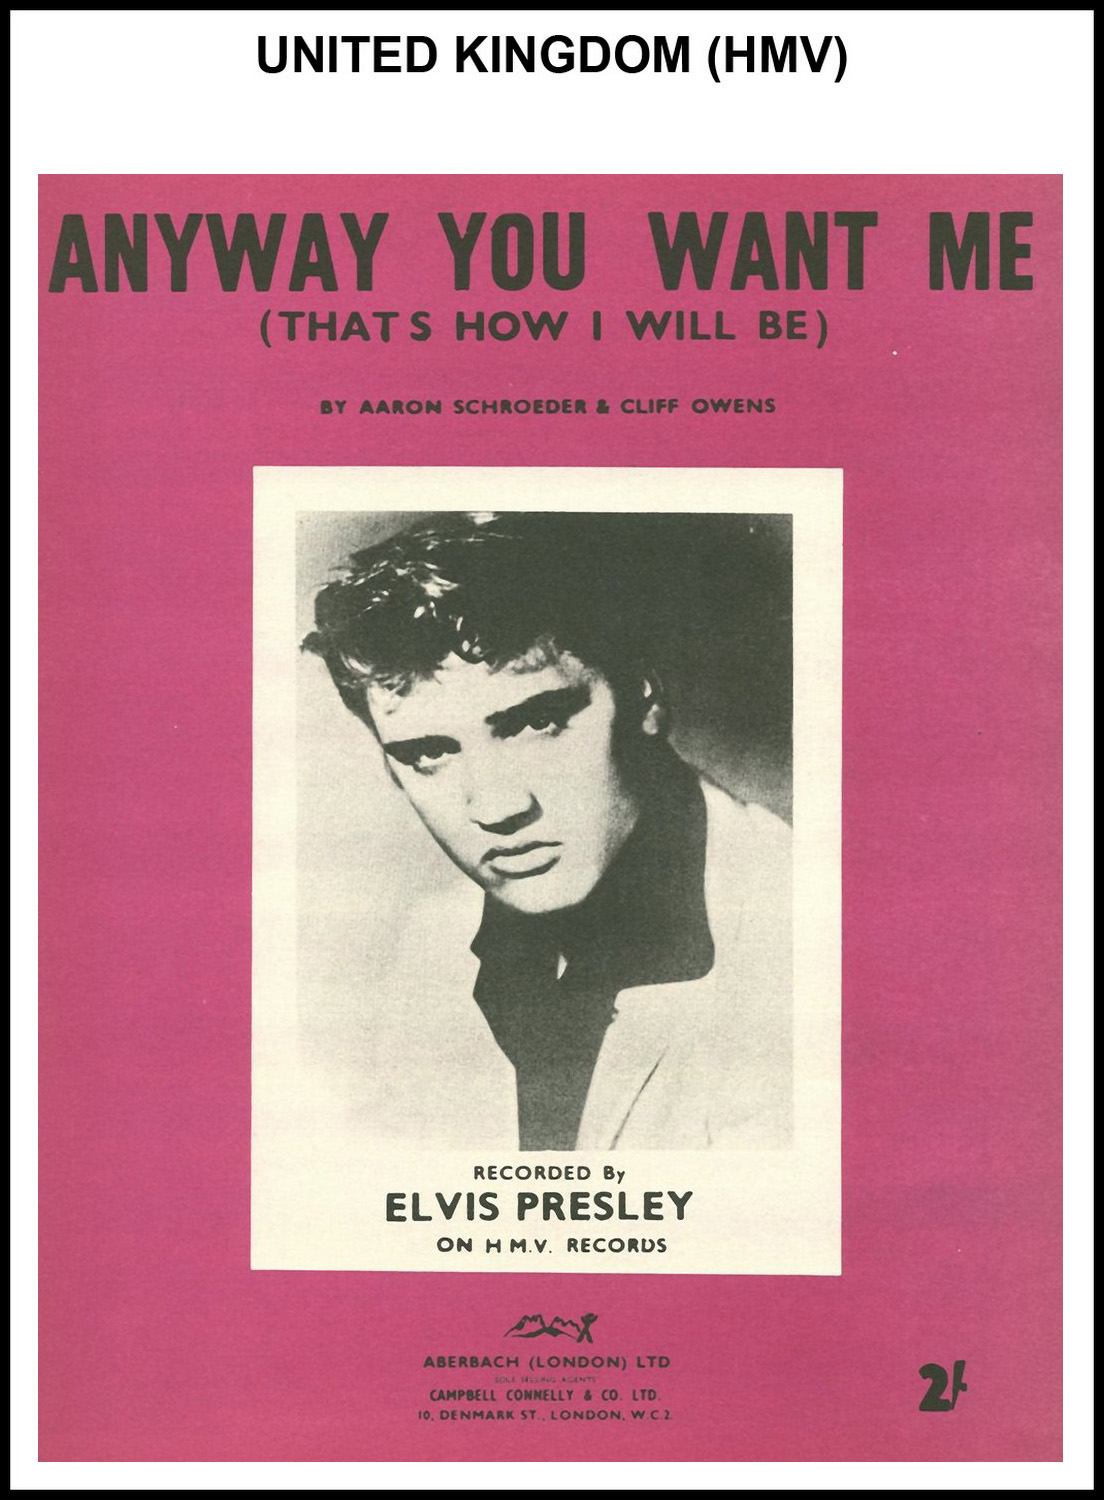 1956 - Anyway You Want Me (UK, HMV) (CHRIS GILES COLLECTION)